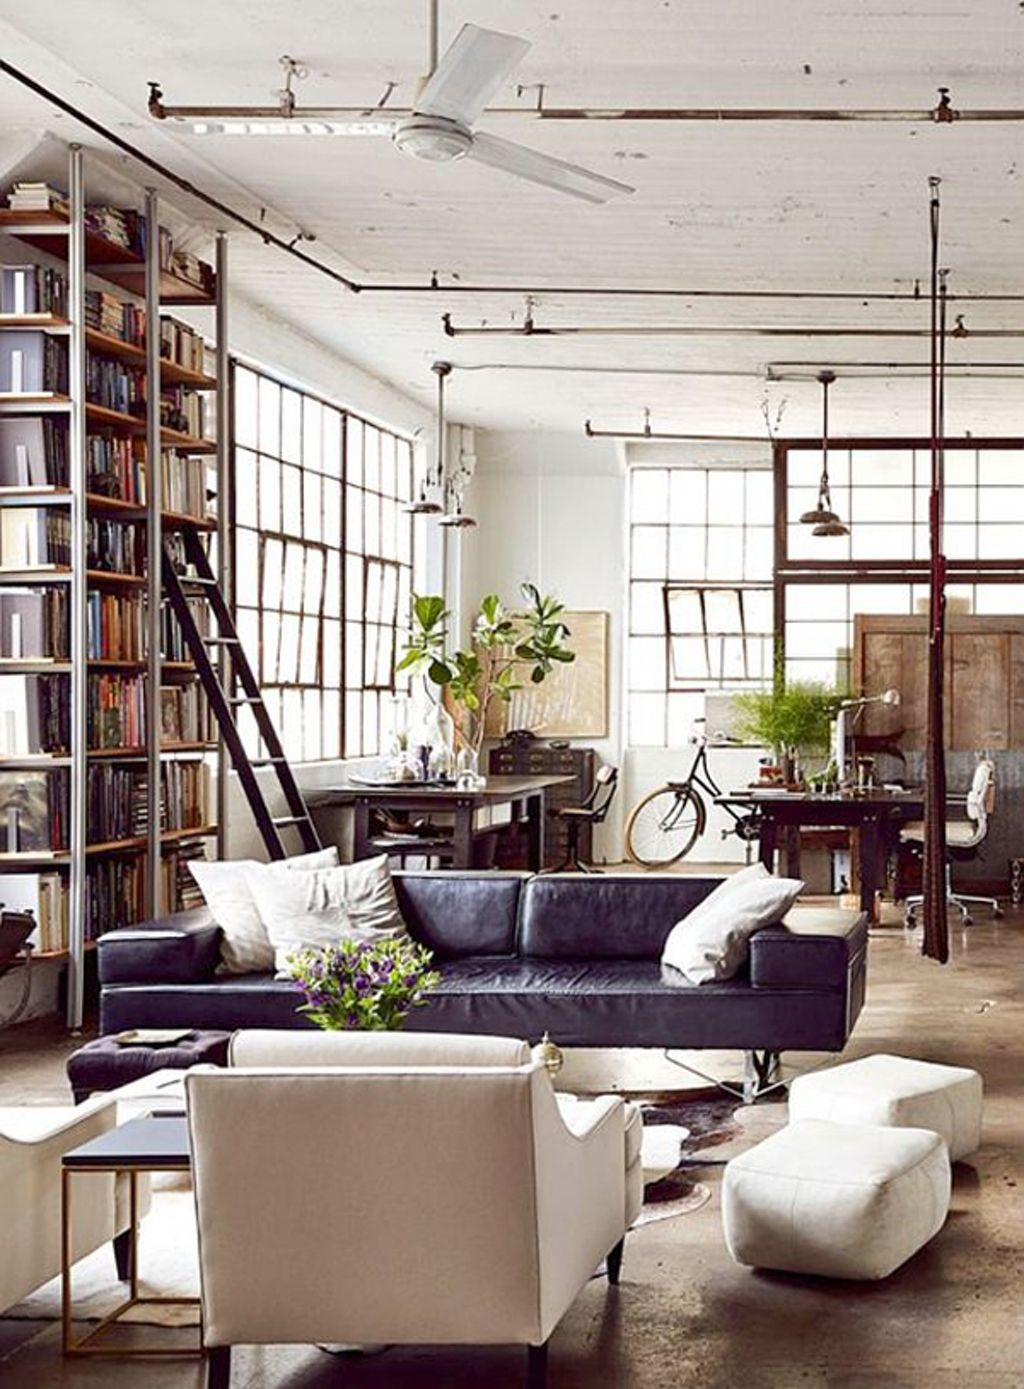 Bright Industrial Living Room Decor Ideas 2minuteswith Com